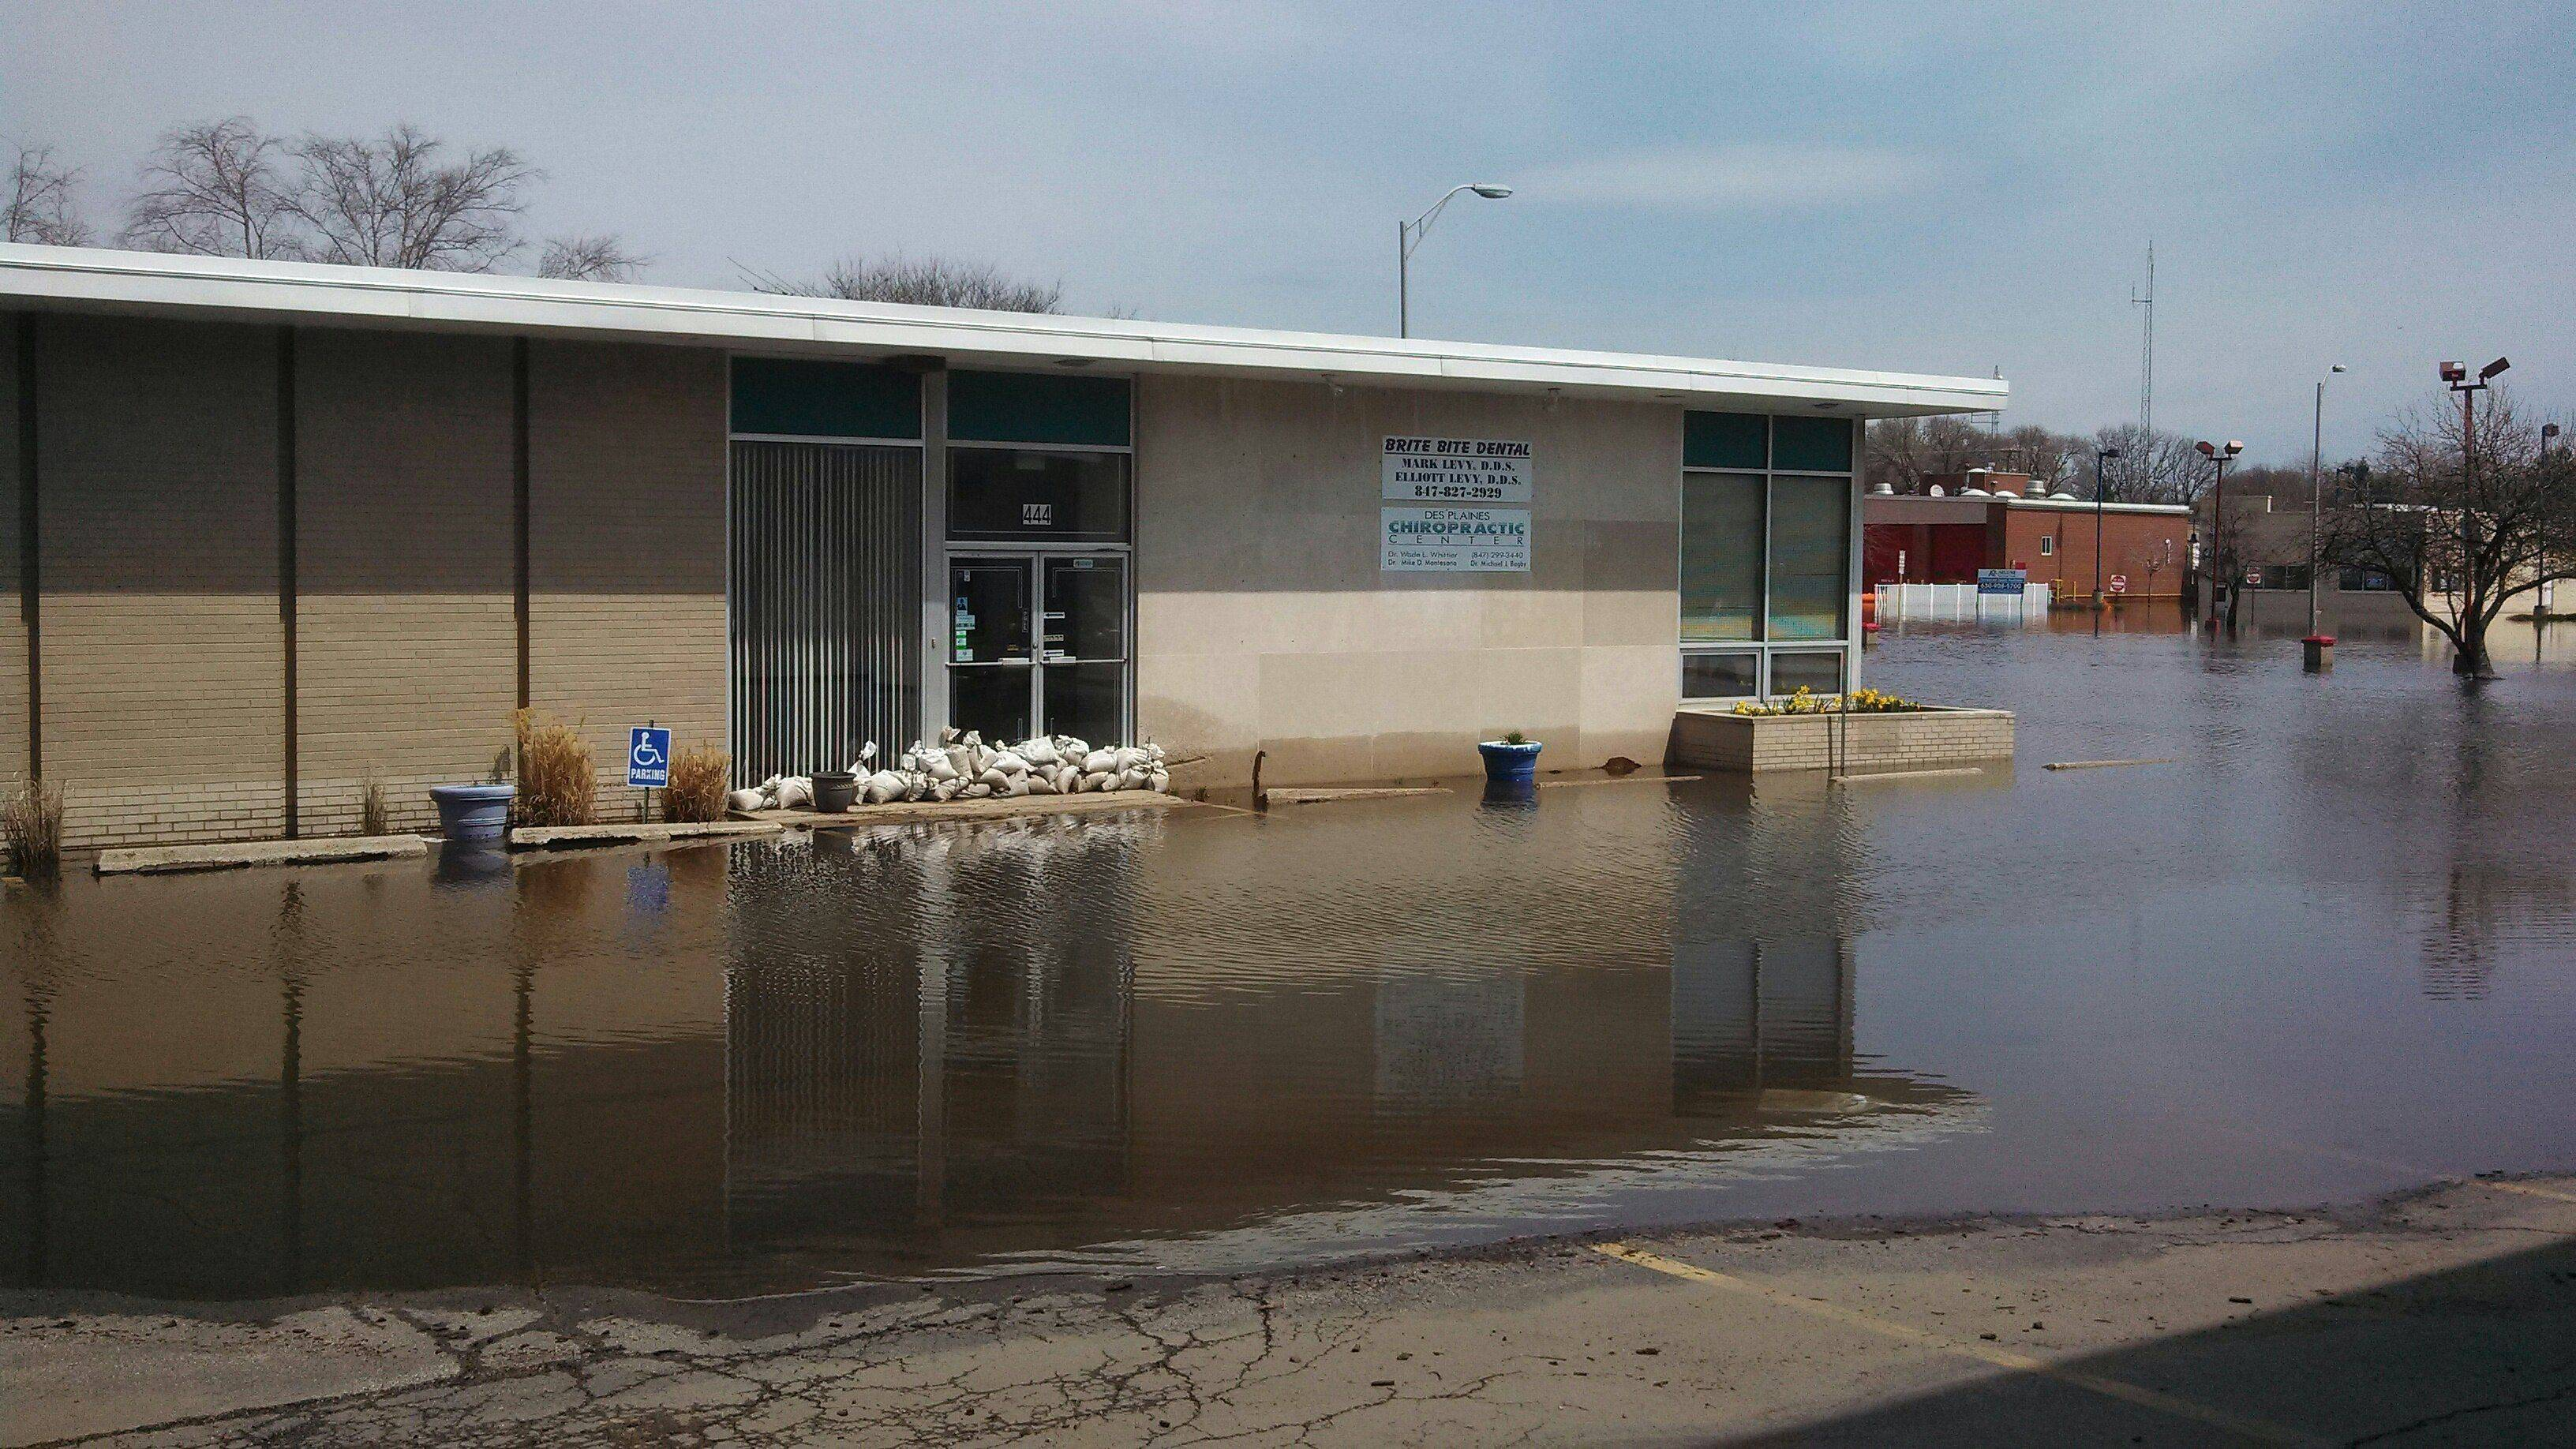 Des Plaines chiropractic business ditches flooding for Arlington Heights